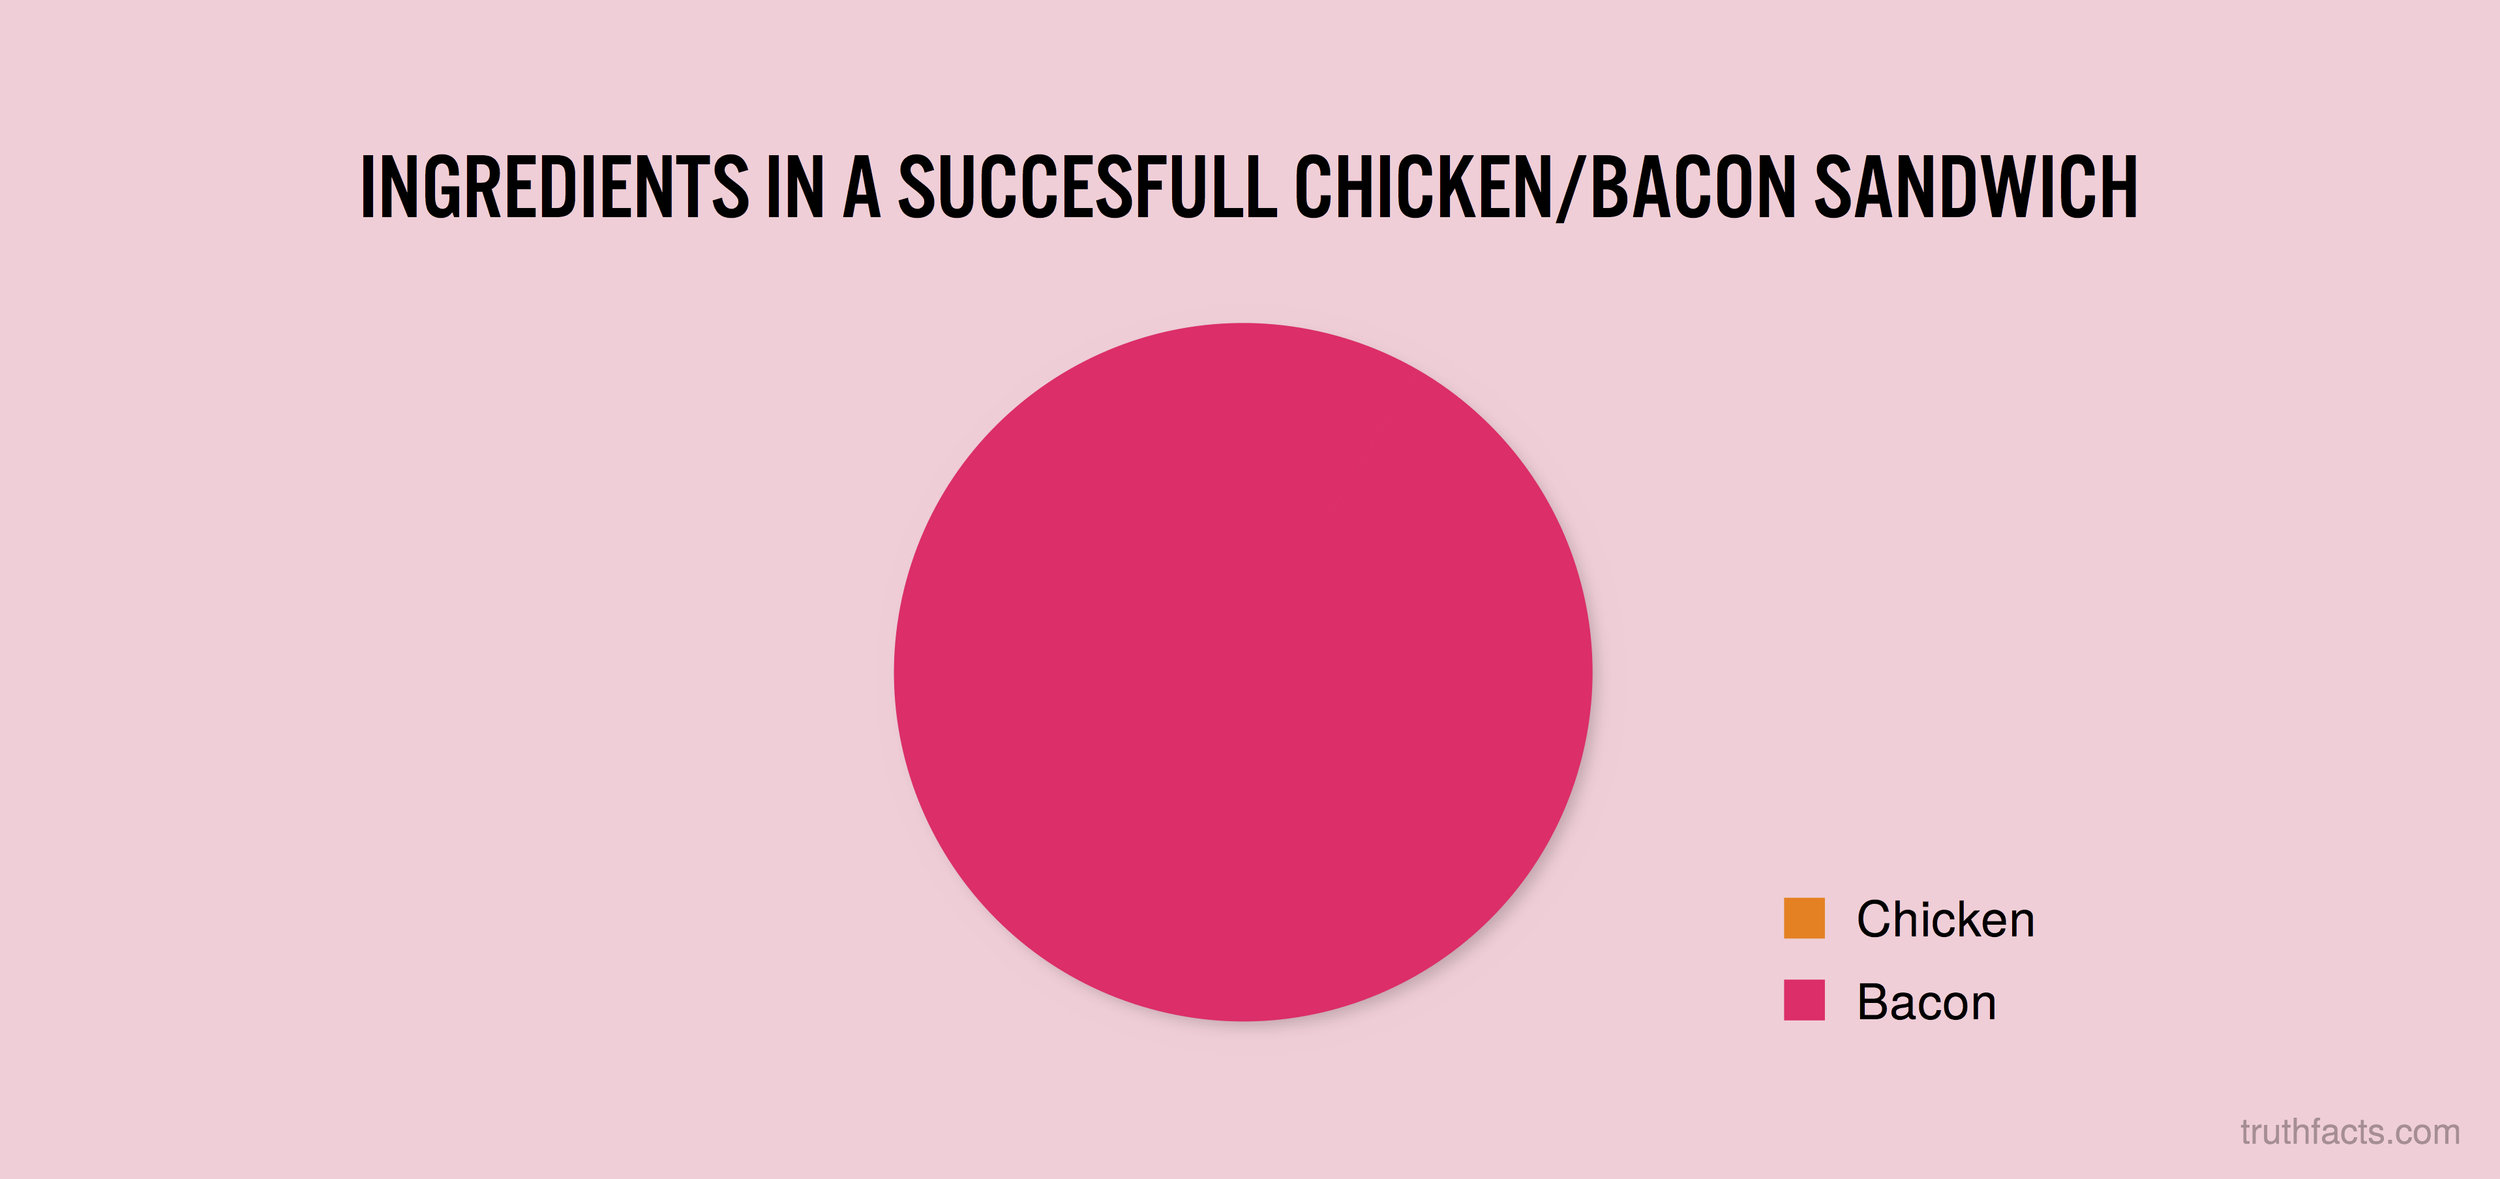 Ingredients in a succesfull chicken/bacon sandwich